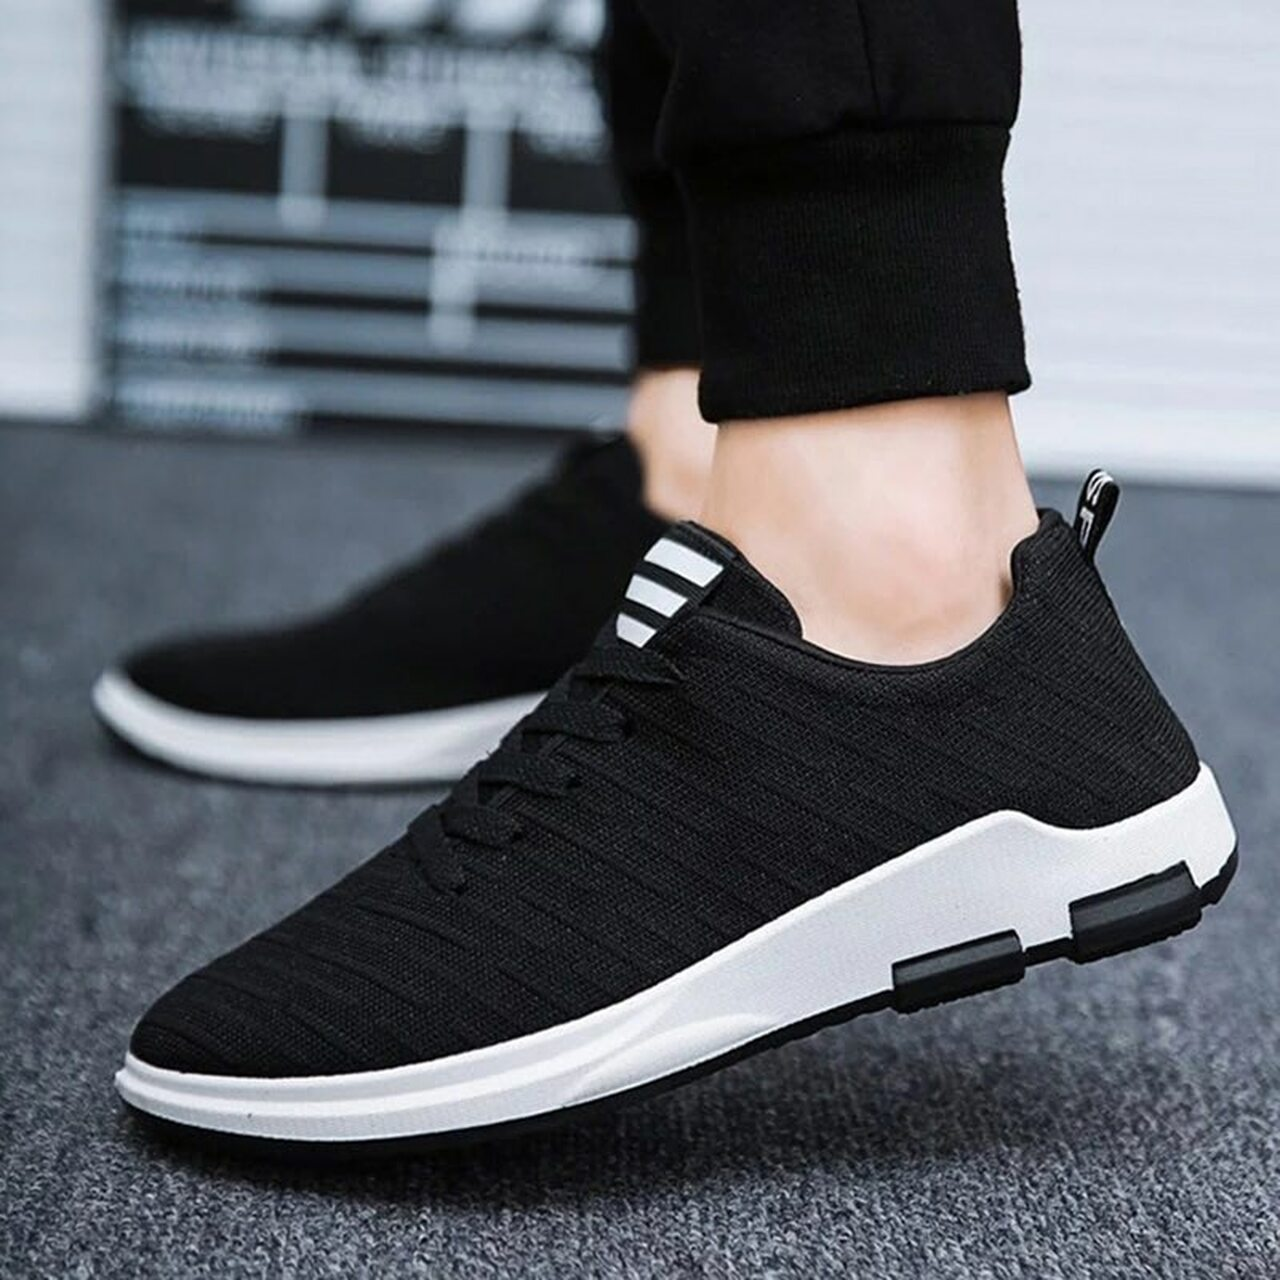 Ariari 2019 Spring Men's Casual Shoes Breathable Mesh Mens Sneakers Lace-up Men's  shoes Flat shoes for men - OnshopDeals.Com